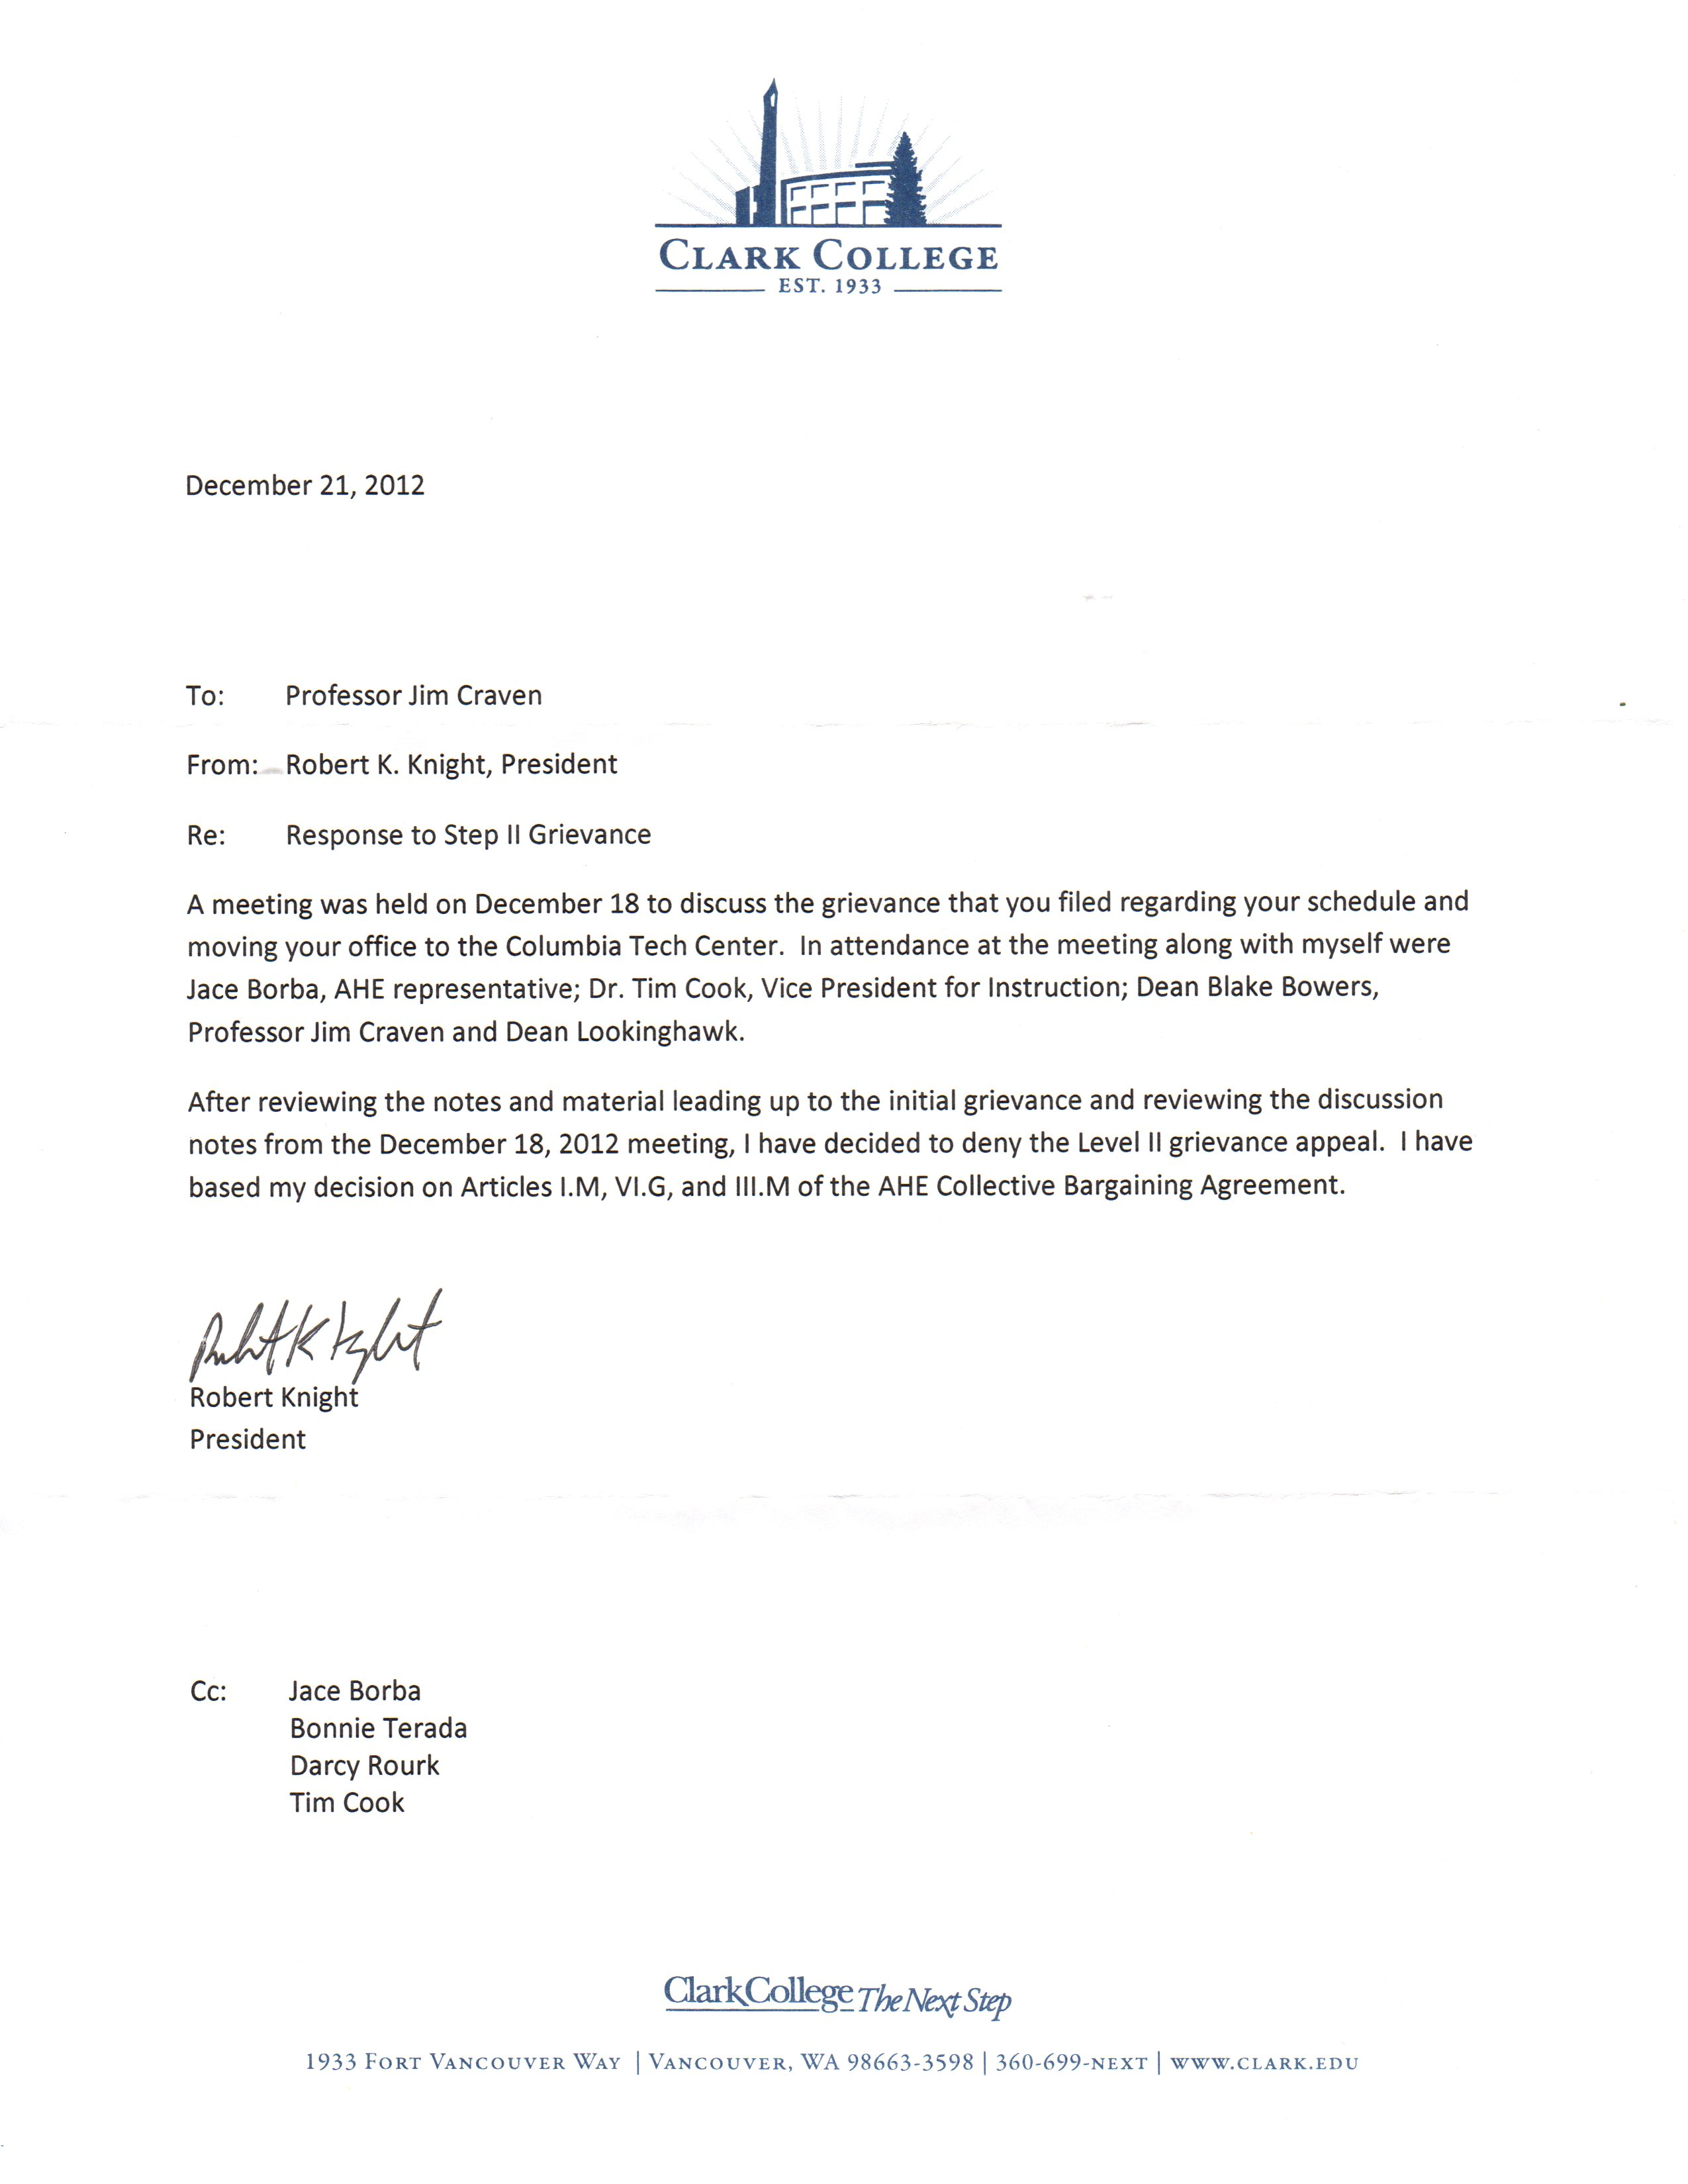 Union Grievance Response Letter from jimcraven10.files.wordpress.com